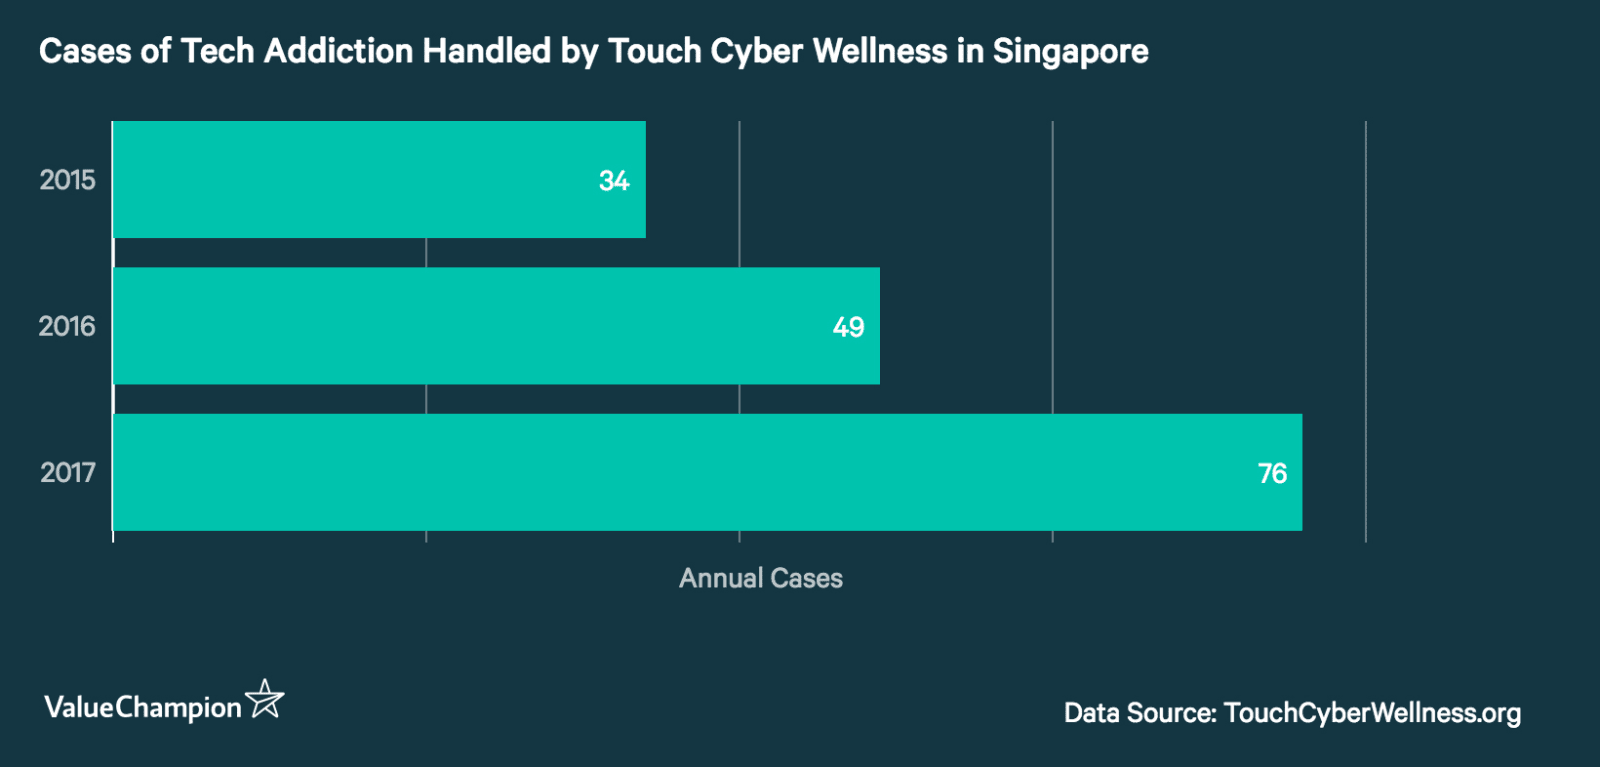 This graph shows the number of tech-addiction related cases handled by Touch Cyber Wellness